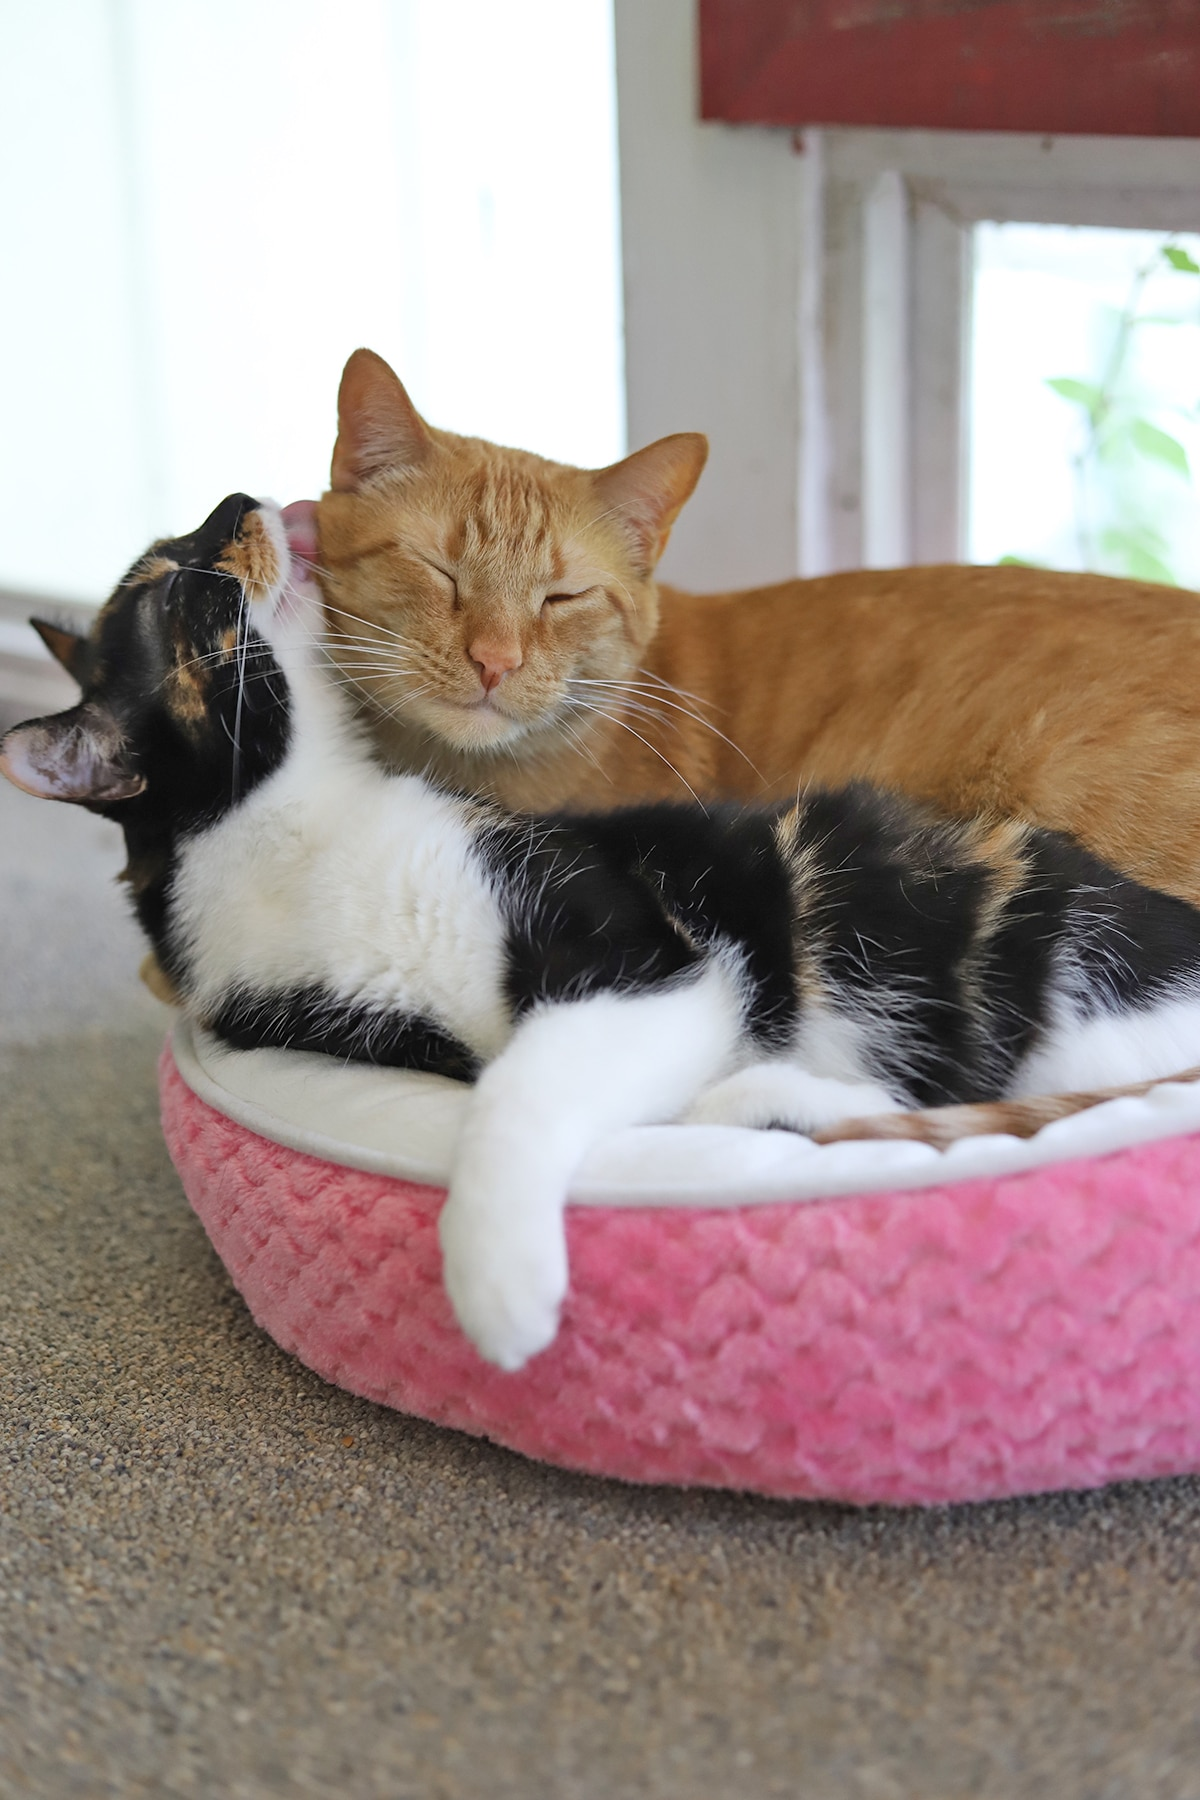 Avon and Cally grooming each other in cat bed.